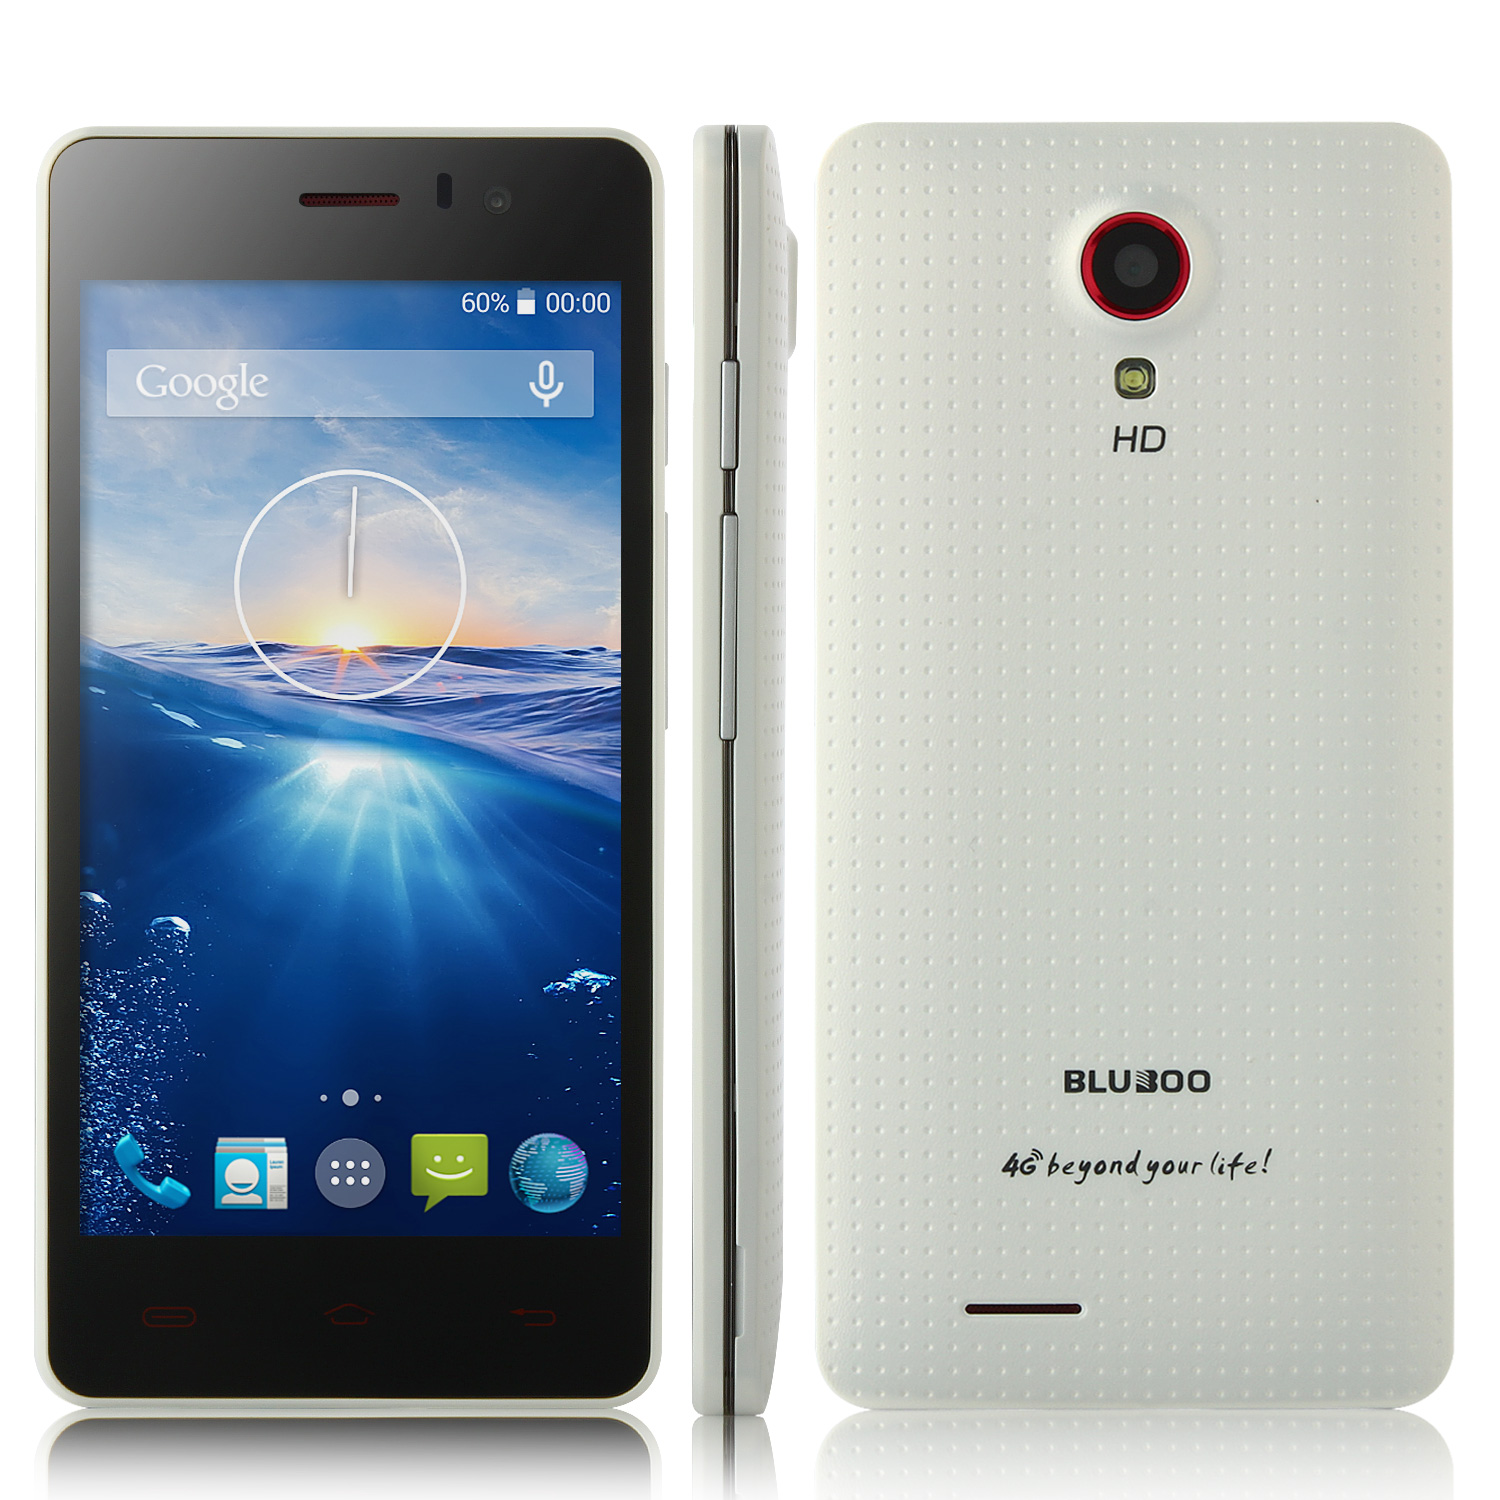 BLUBOO X4 Smartphone 4G LTE Android 4.4 MTK6582 4.5 Inch IPS 1GB 4GB White